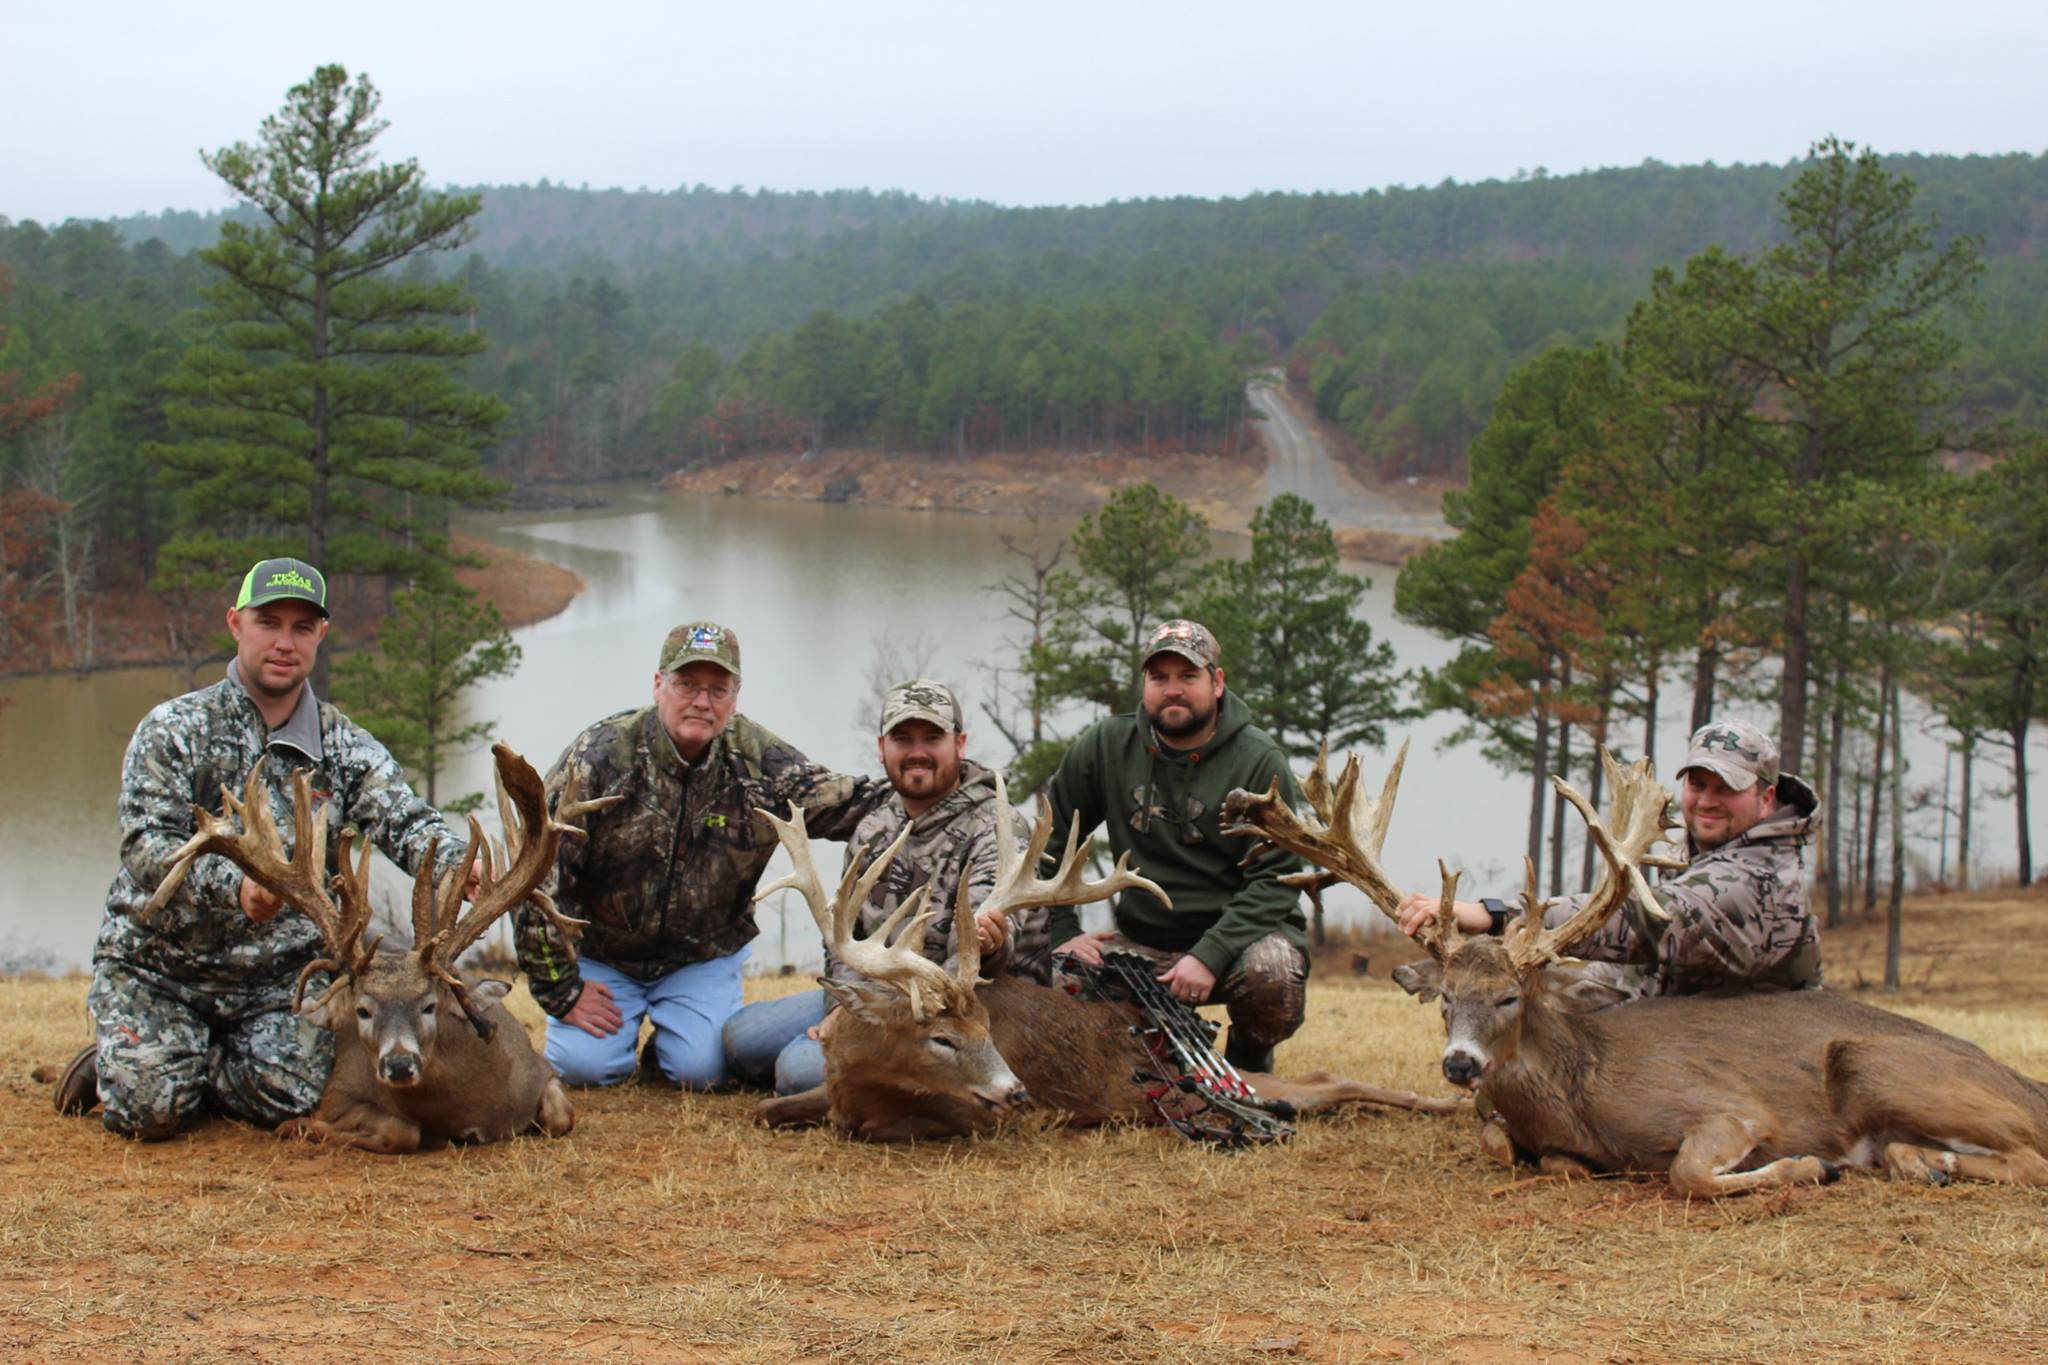 Group Hunting Trip Oklahoma